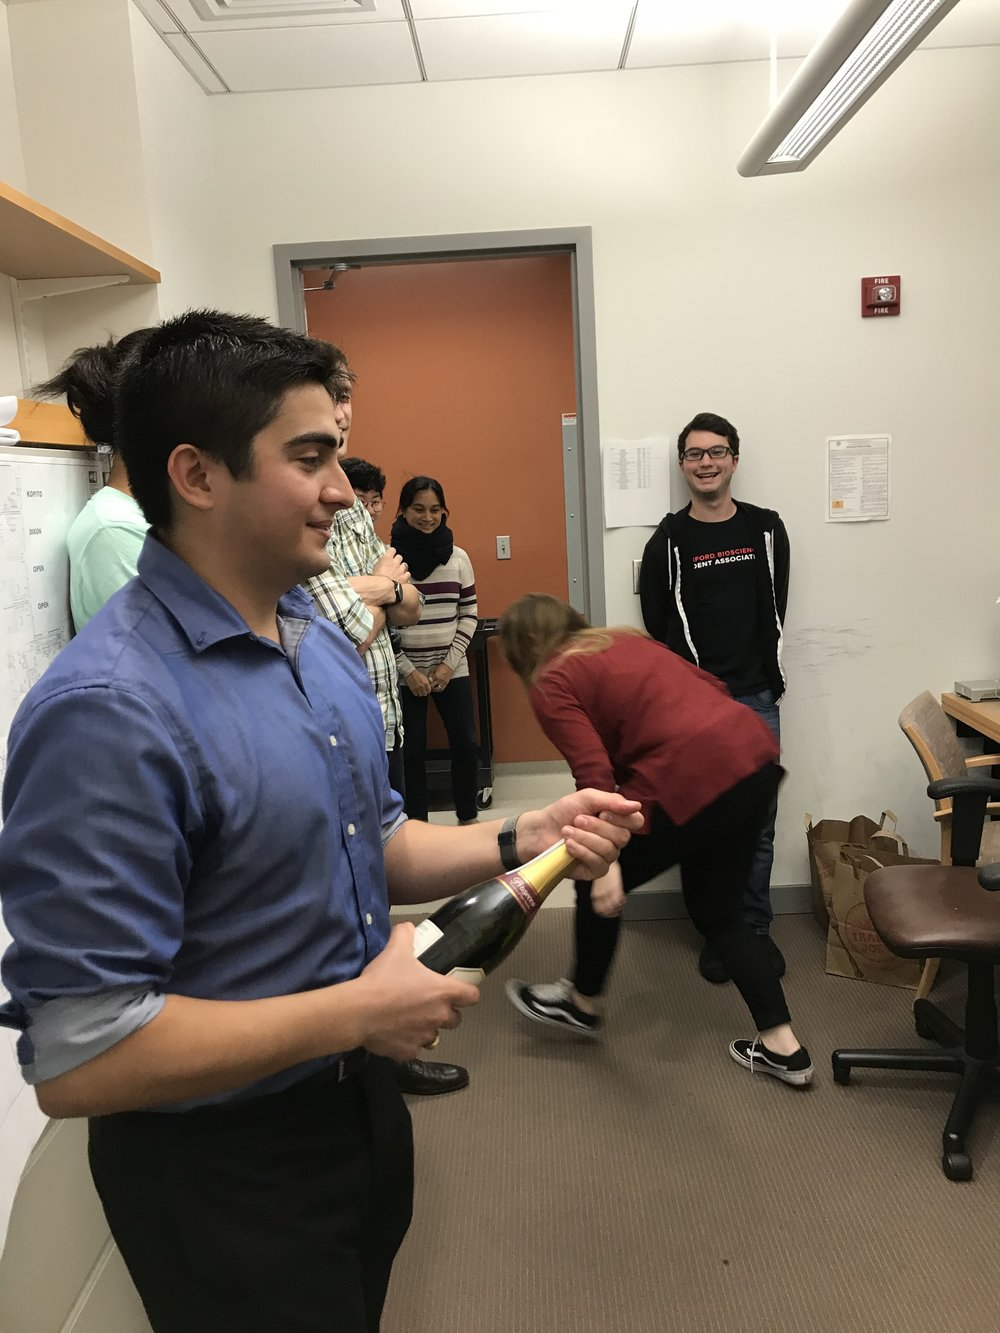 David successfully completes his Ph.D. qualifying exam. Congrats to David! - 2 November 18